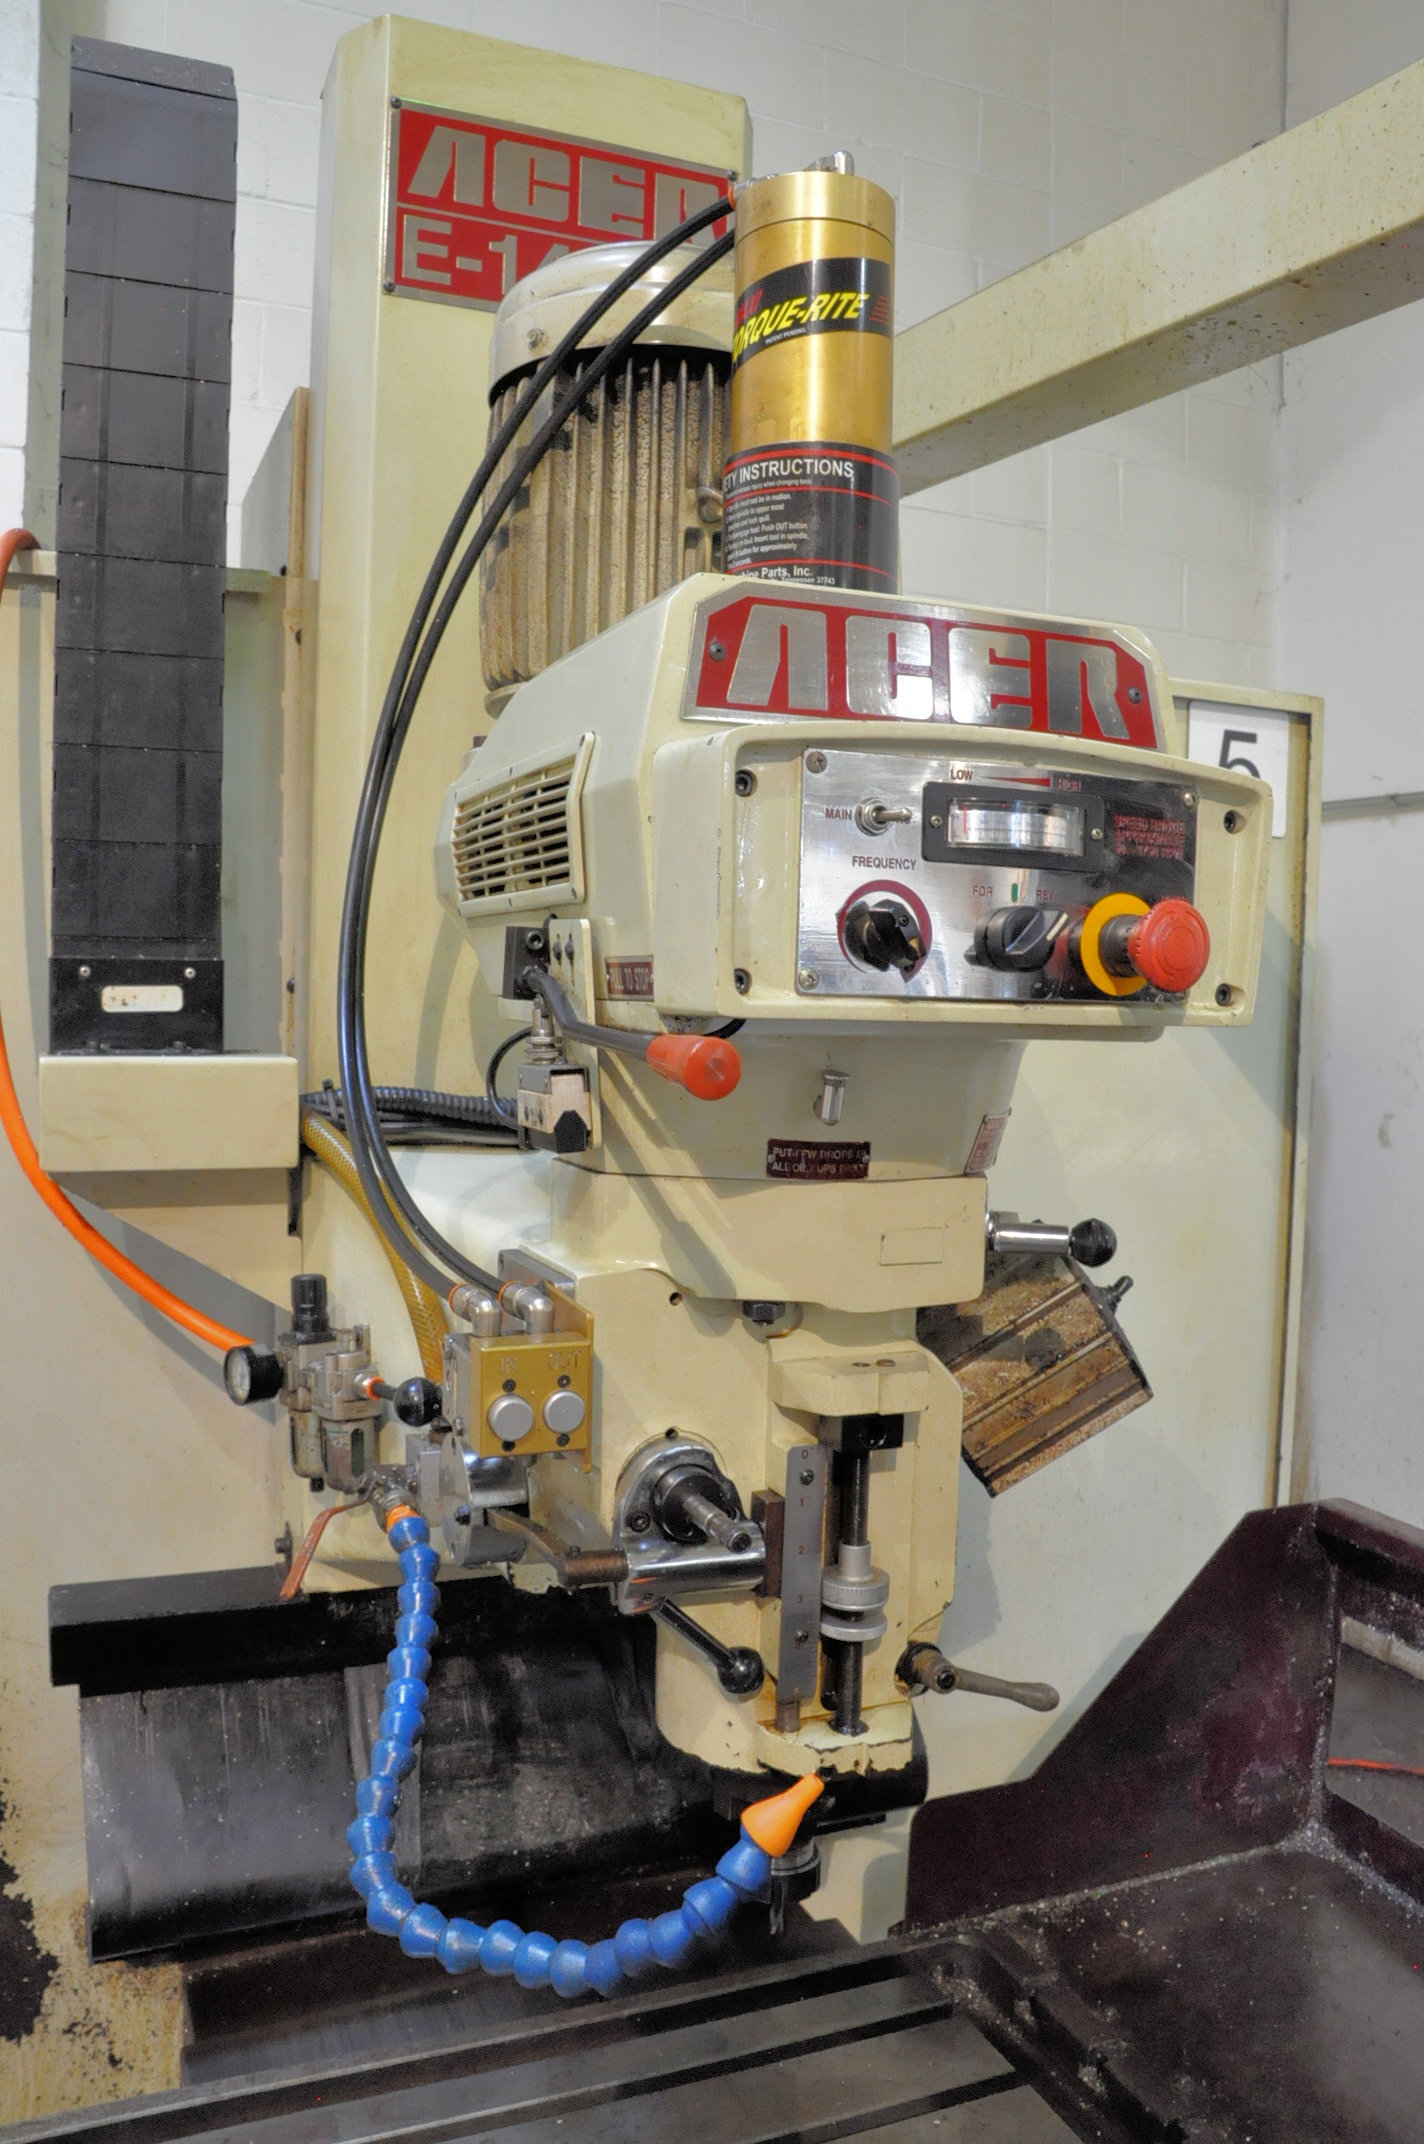 Acer Model E-1454B, 3-Axis CNC Bed Type Vertical Milling Machine, Fagor Control 5-HP (2009) - Image 4 of 7